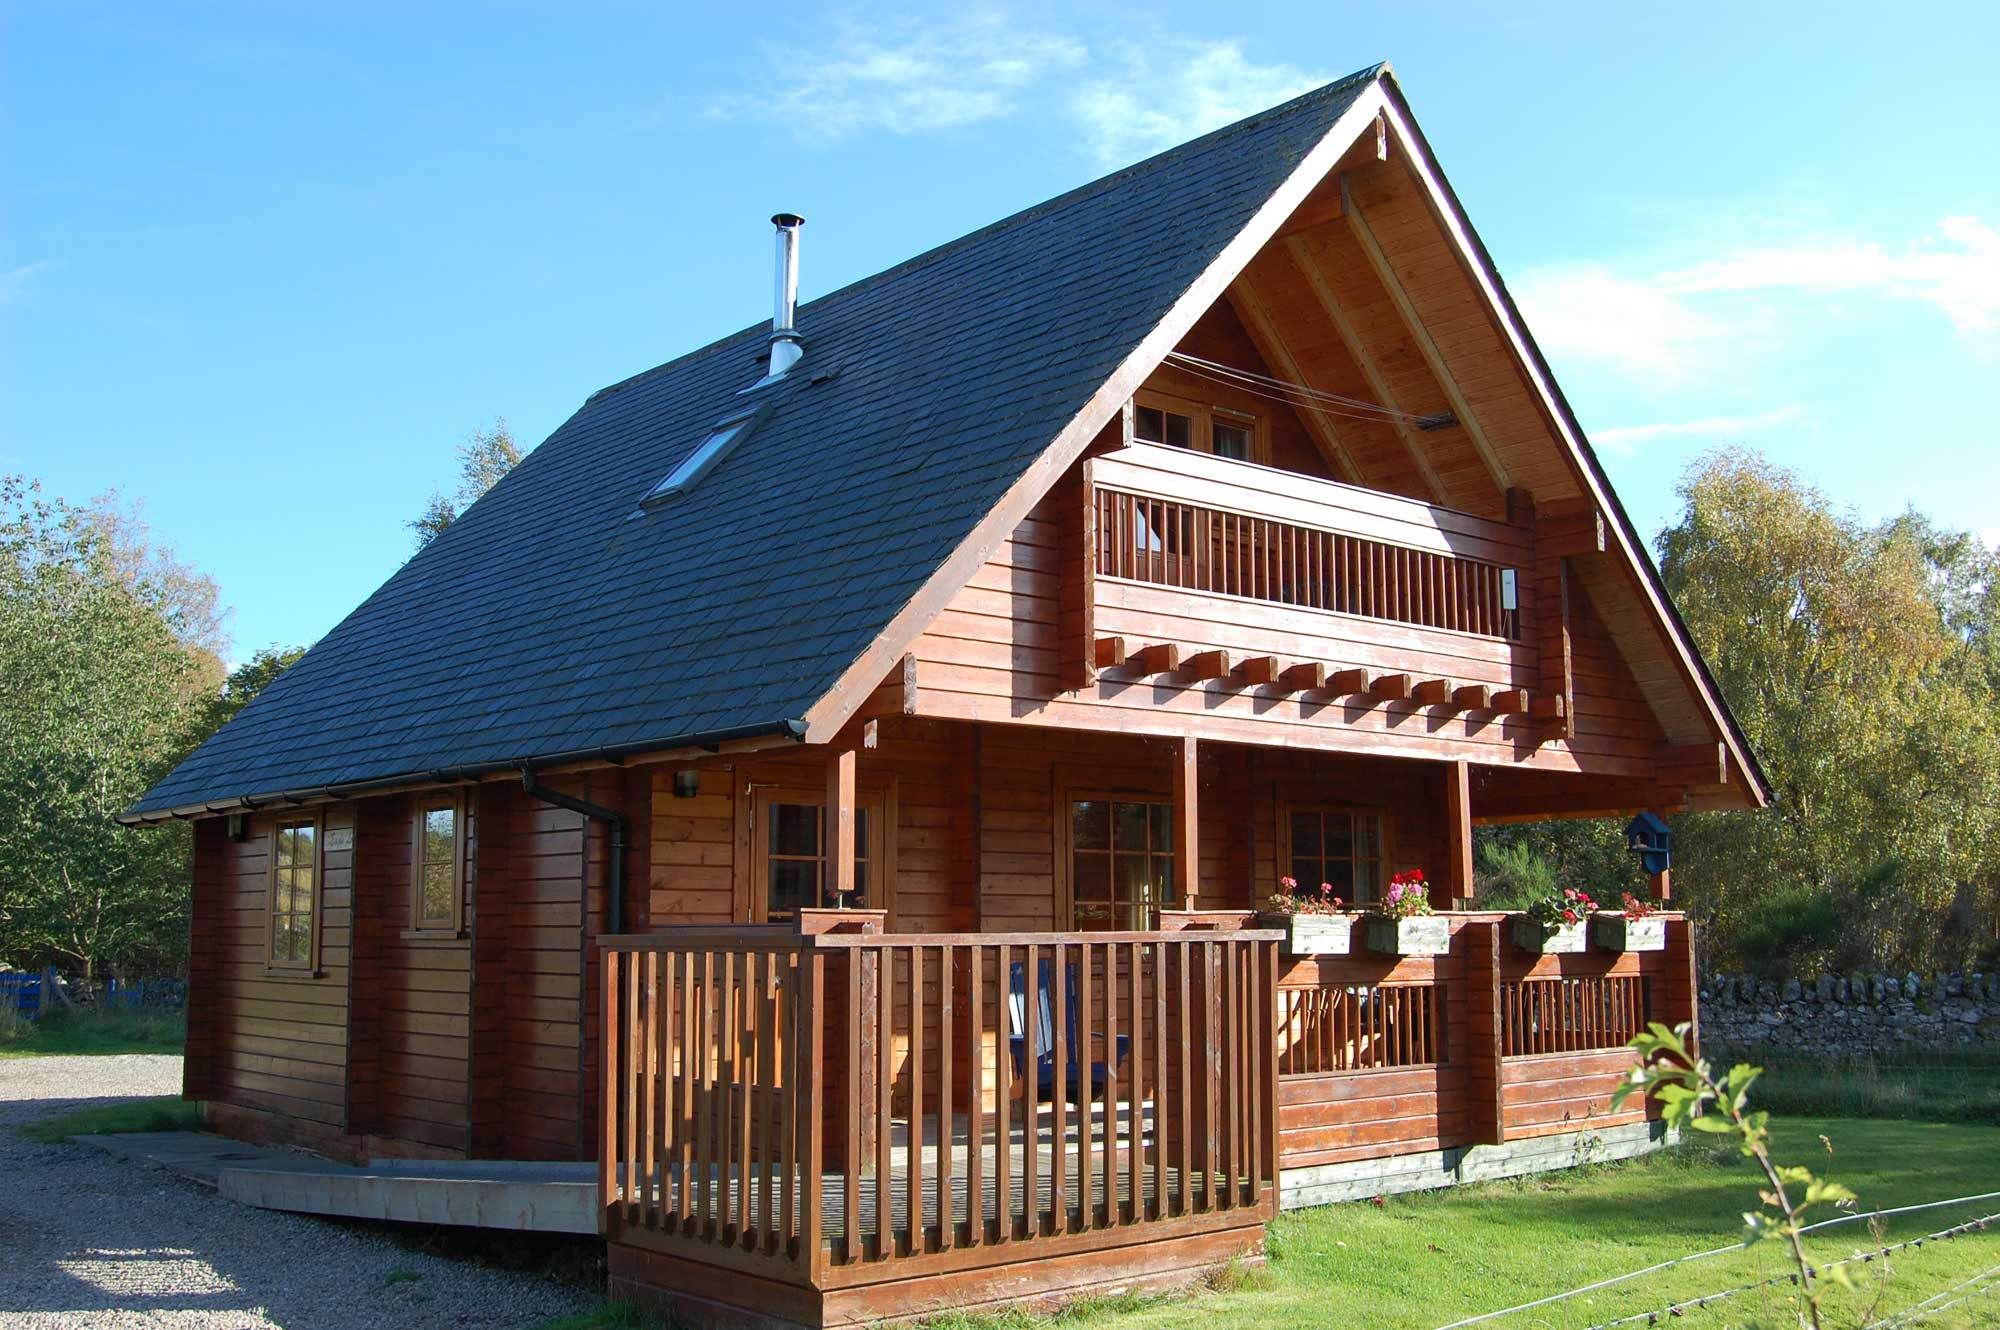 Self-Catering in Inverness-shire holidays at Cool Places